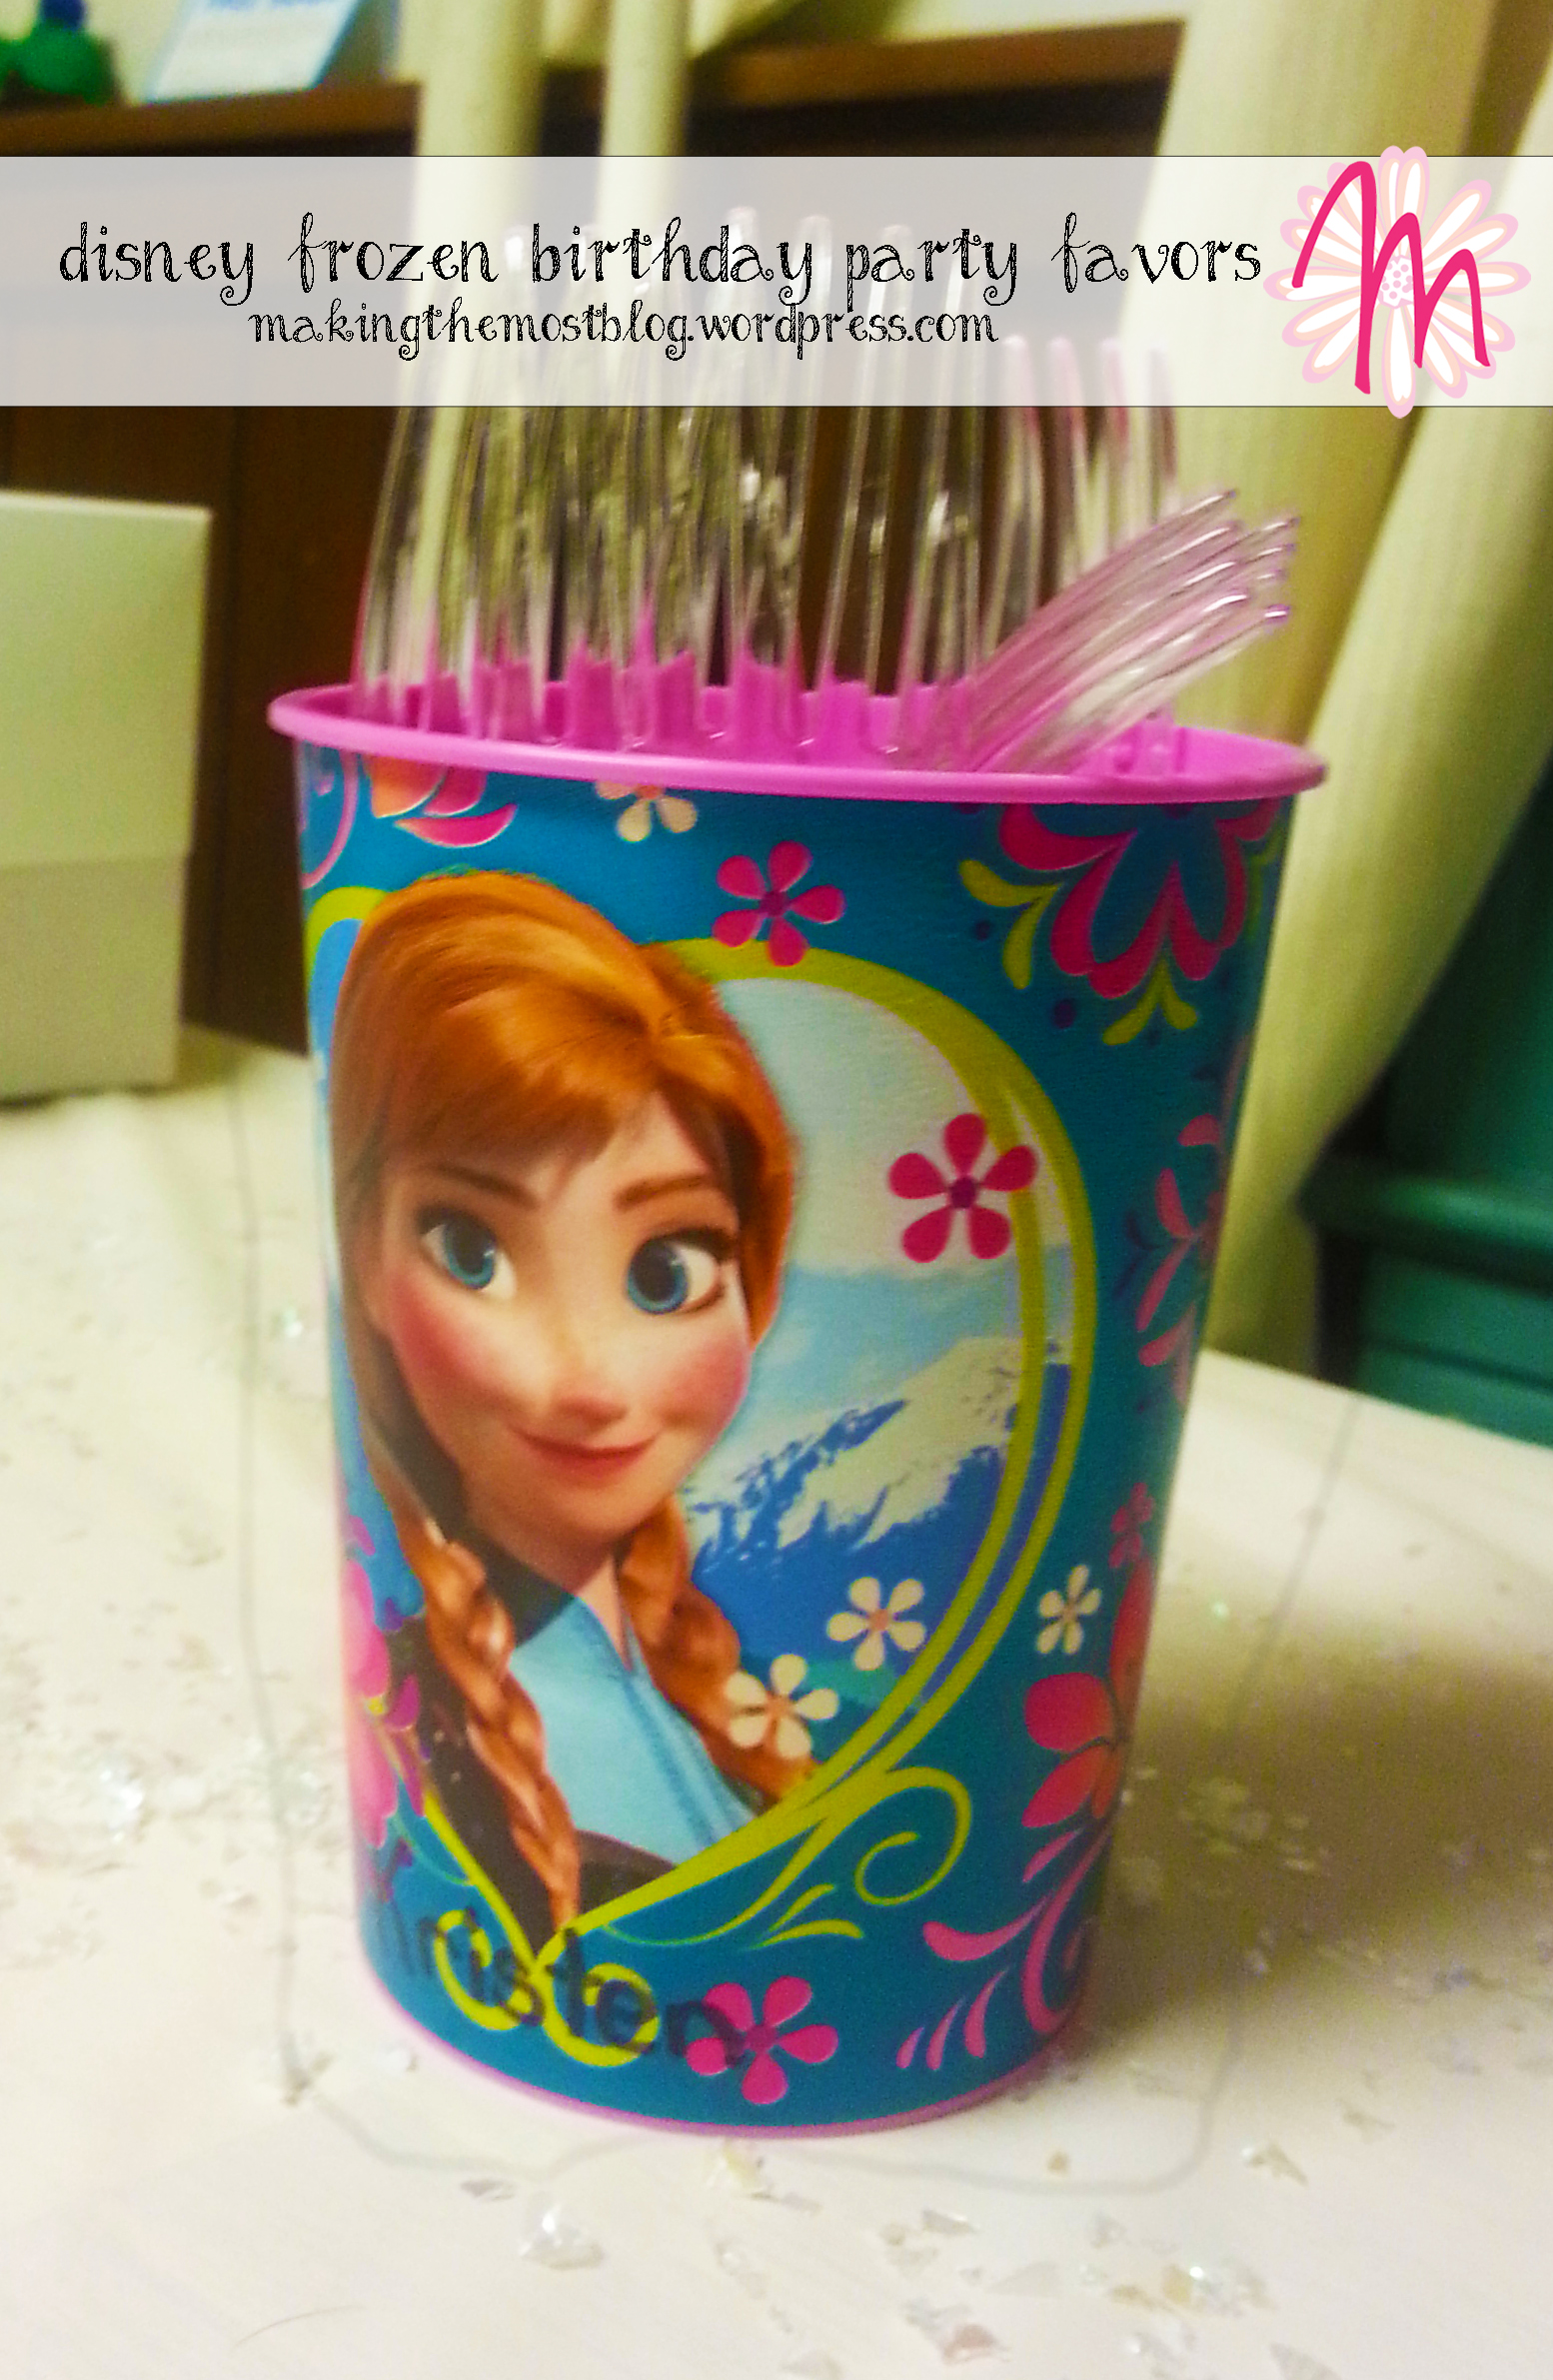 Cups | Disney Frozen Birthday | Making the Most Blog